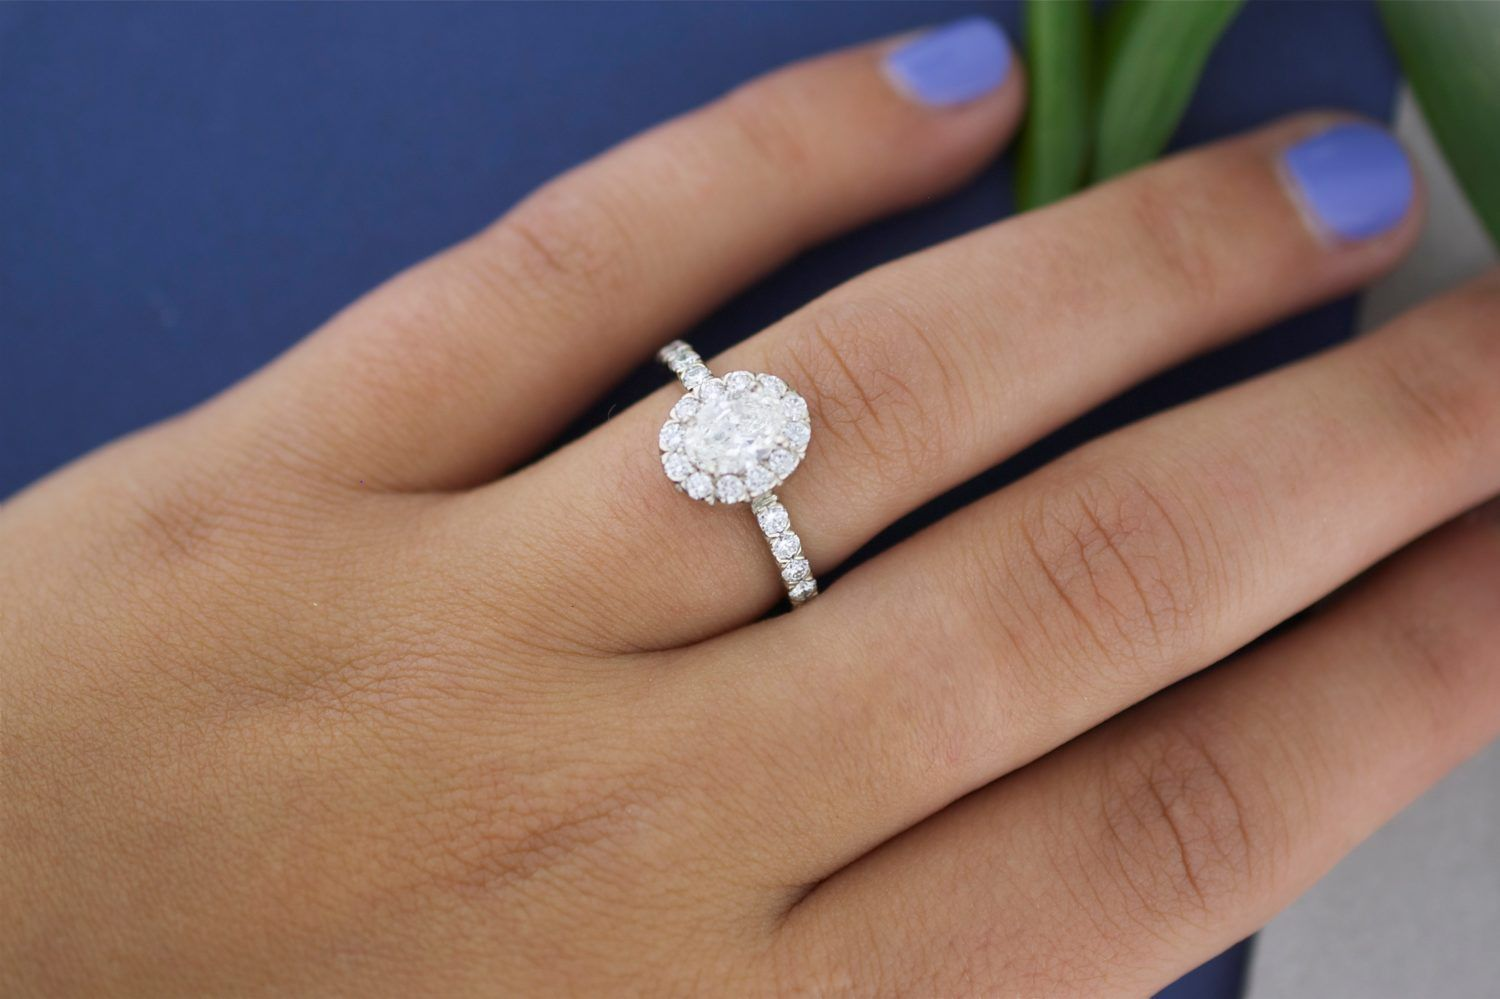 Engagement Ring VS Wedding Ring What's the Difference